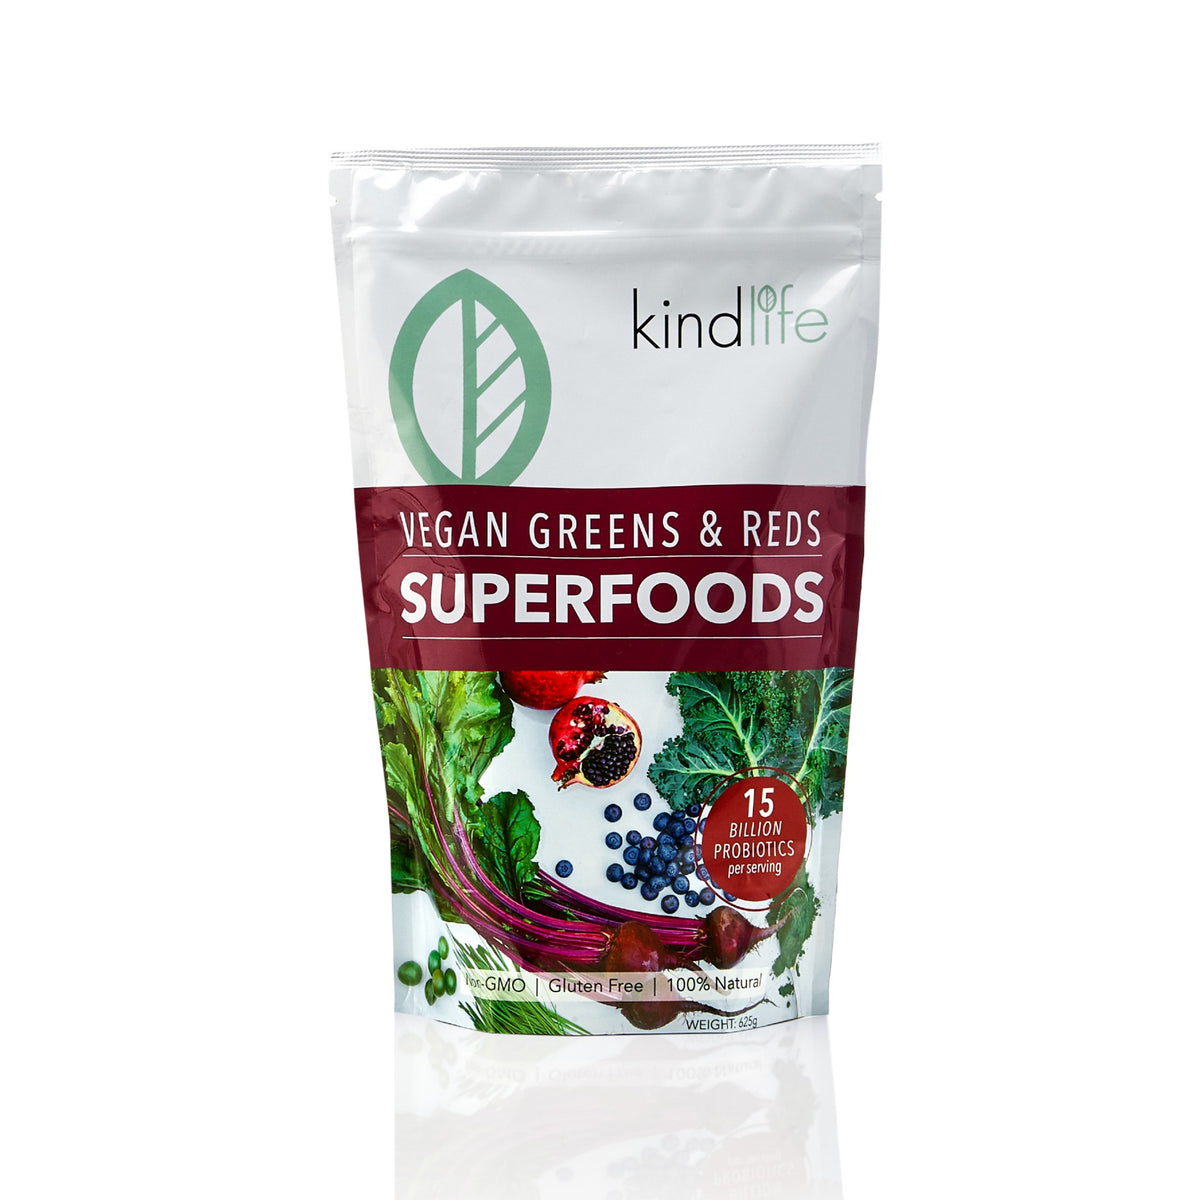 Vegan Greens & Reds Superfoods